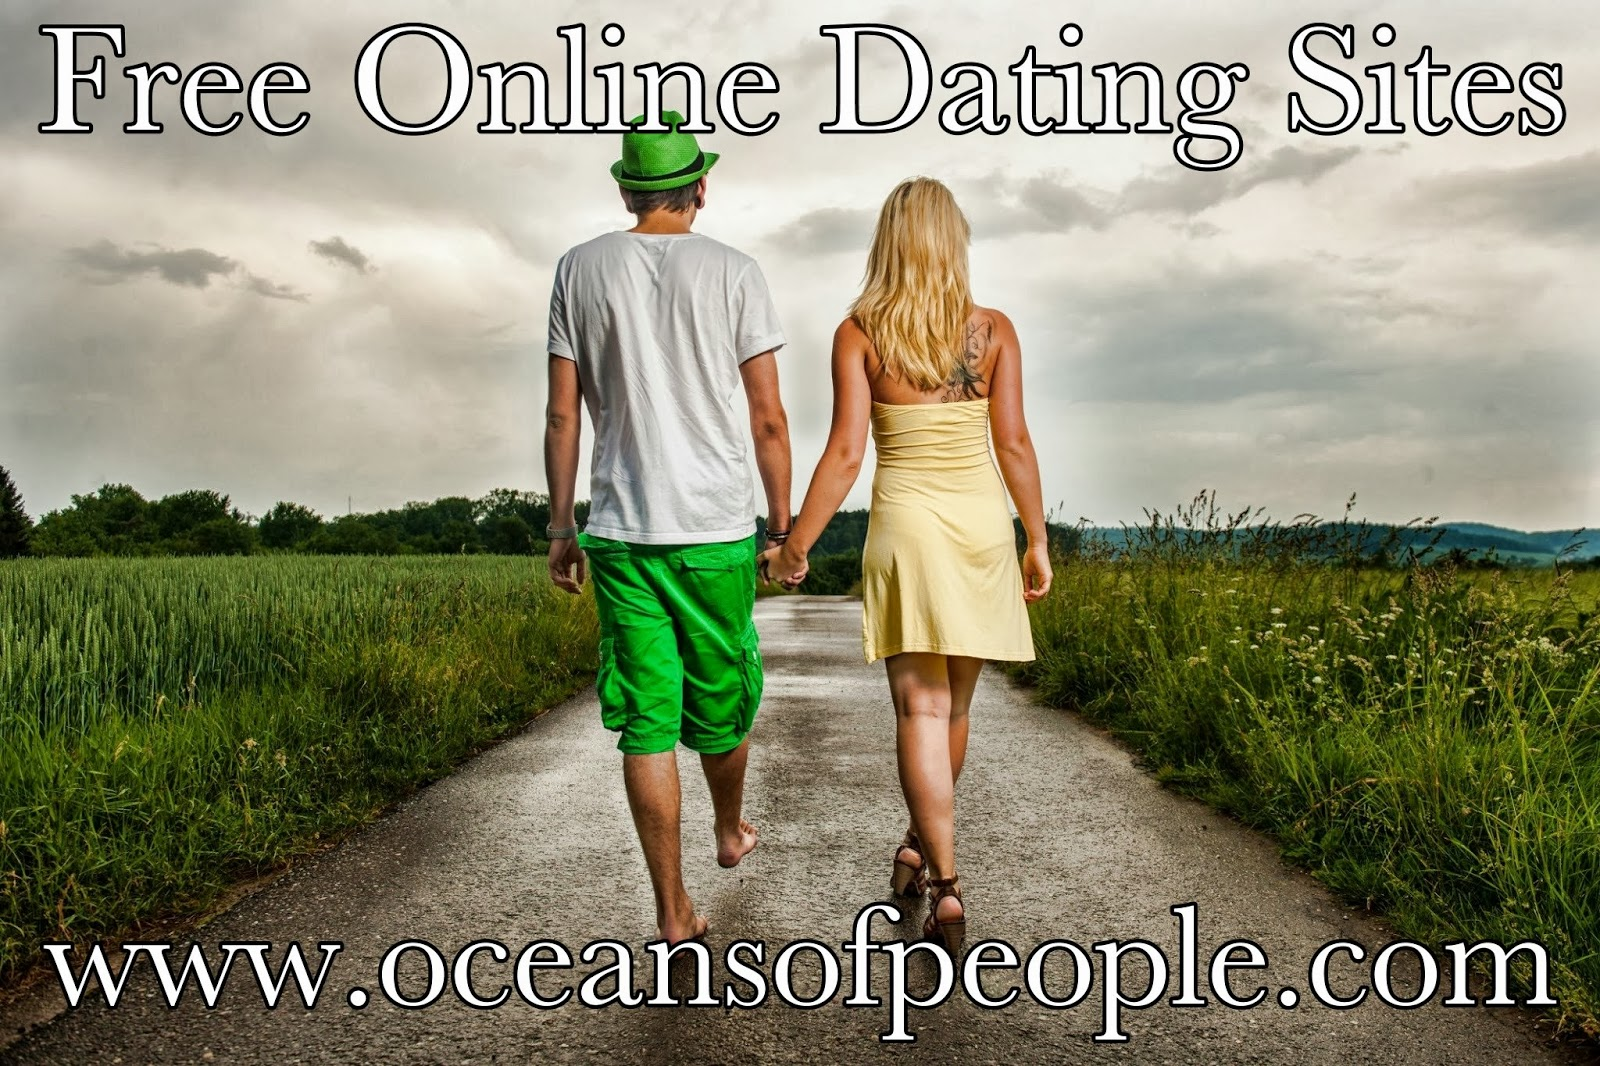 Free online dating sites in tanzania